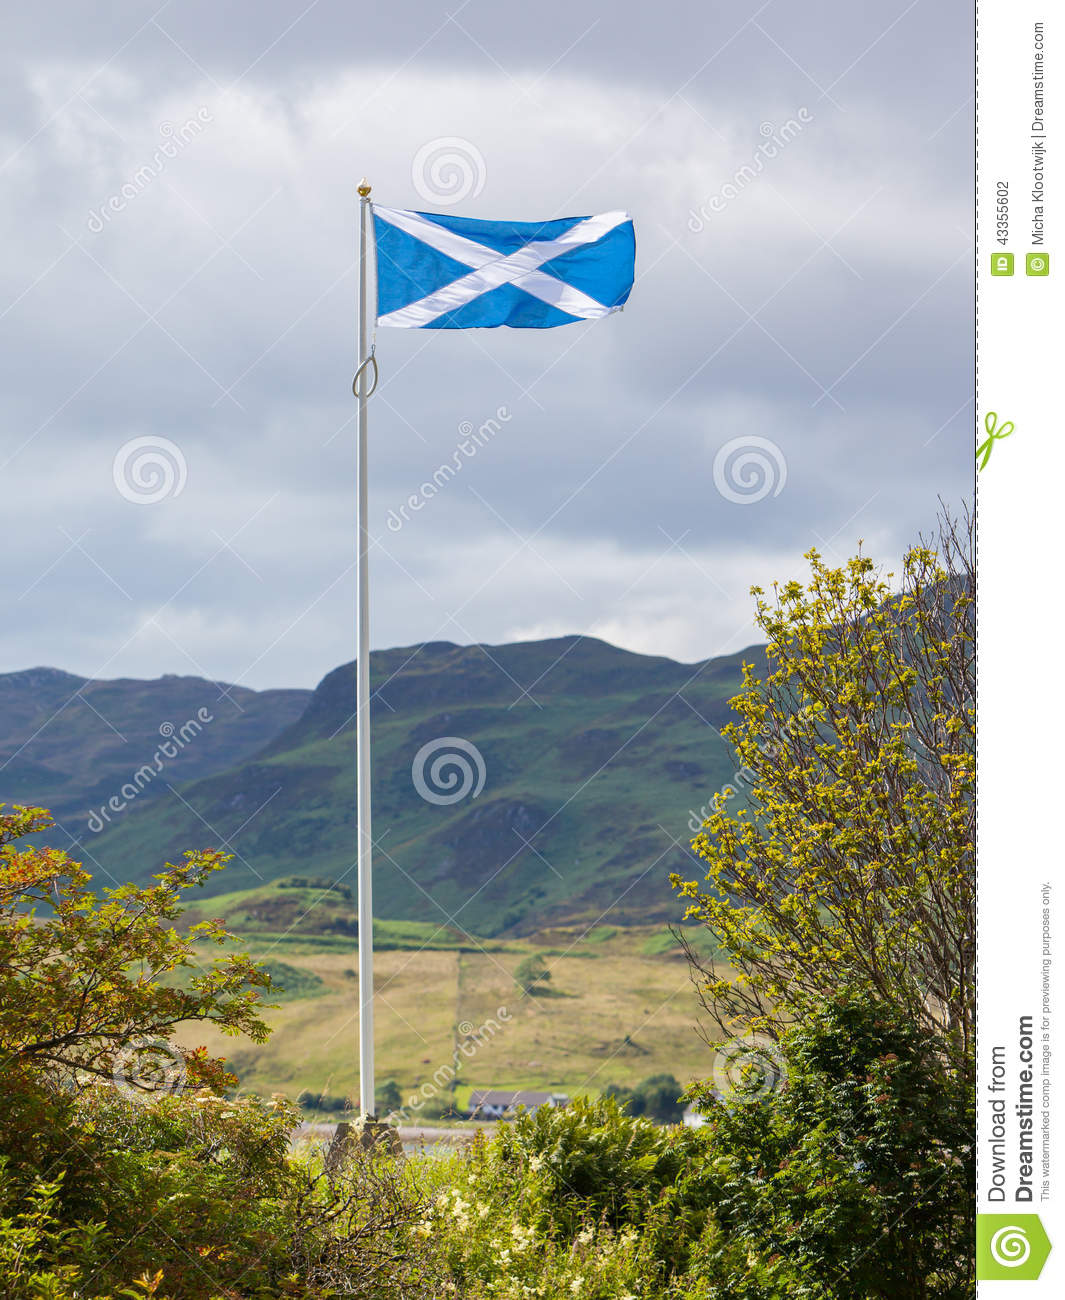 Scotland flag waving in the wind